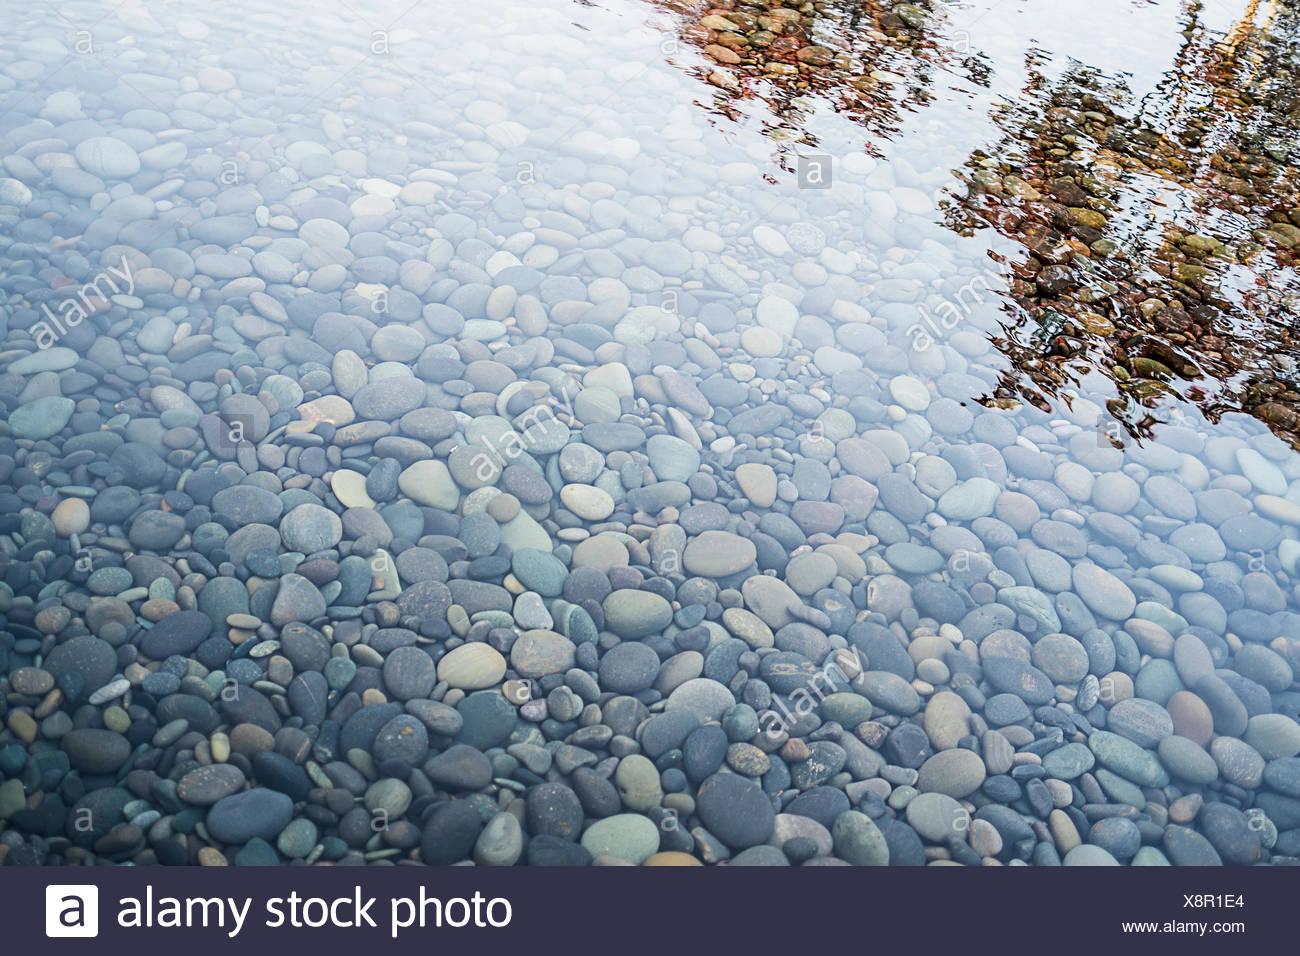 Pebbles On A River Bed. Reflections And Ripples On The Surface.   Stock  Image